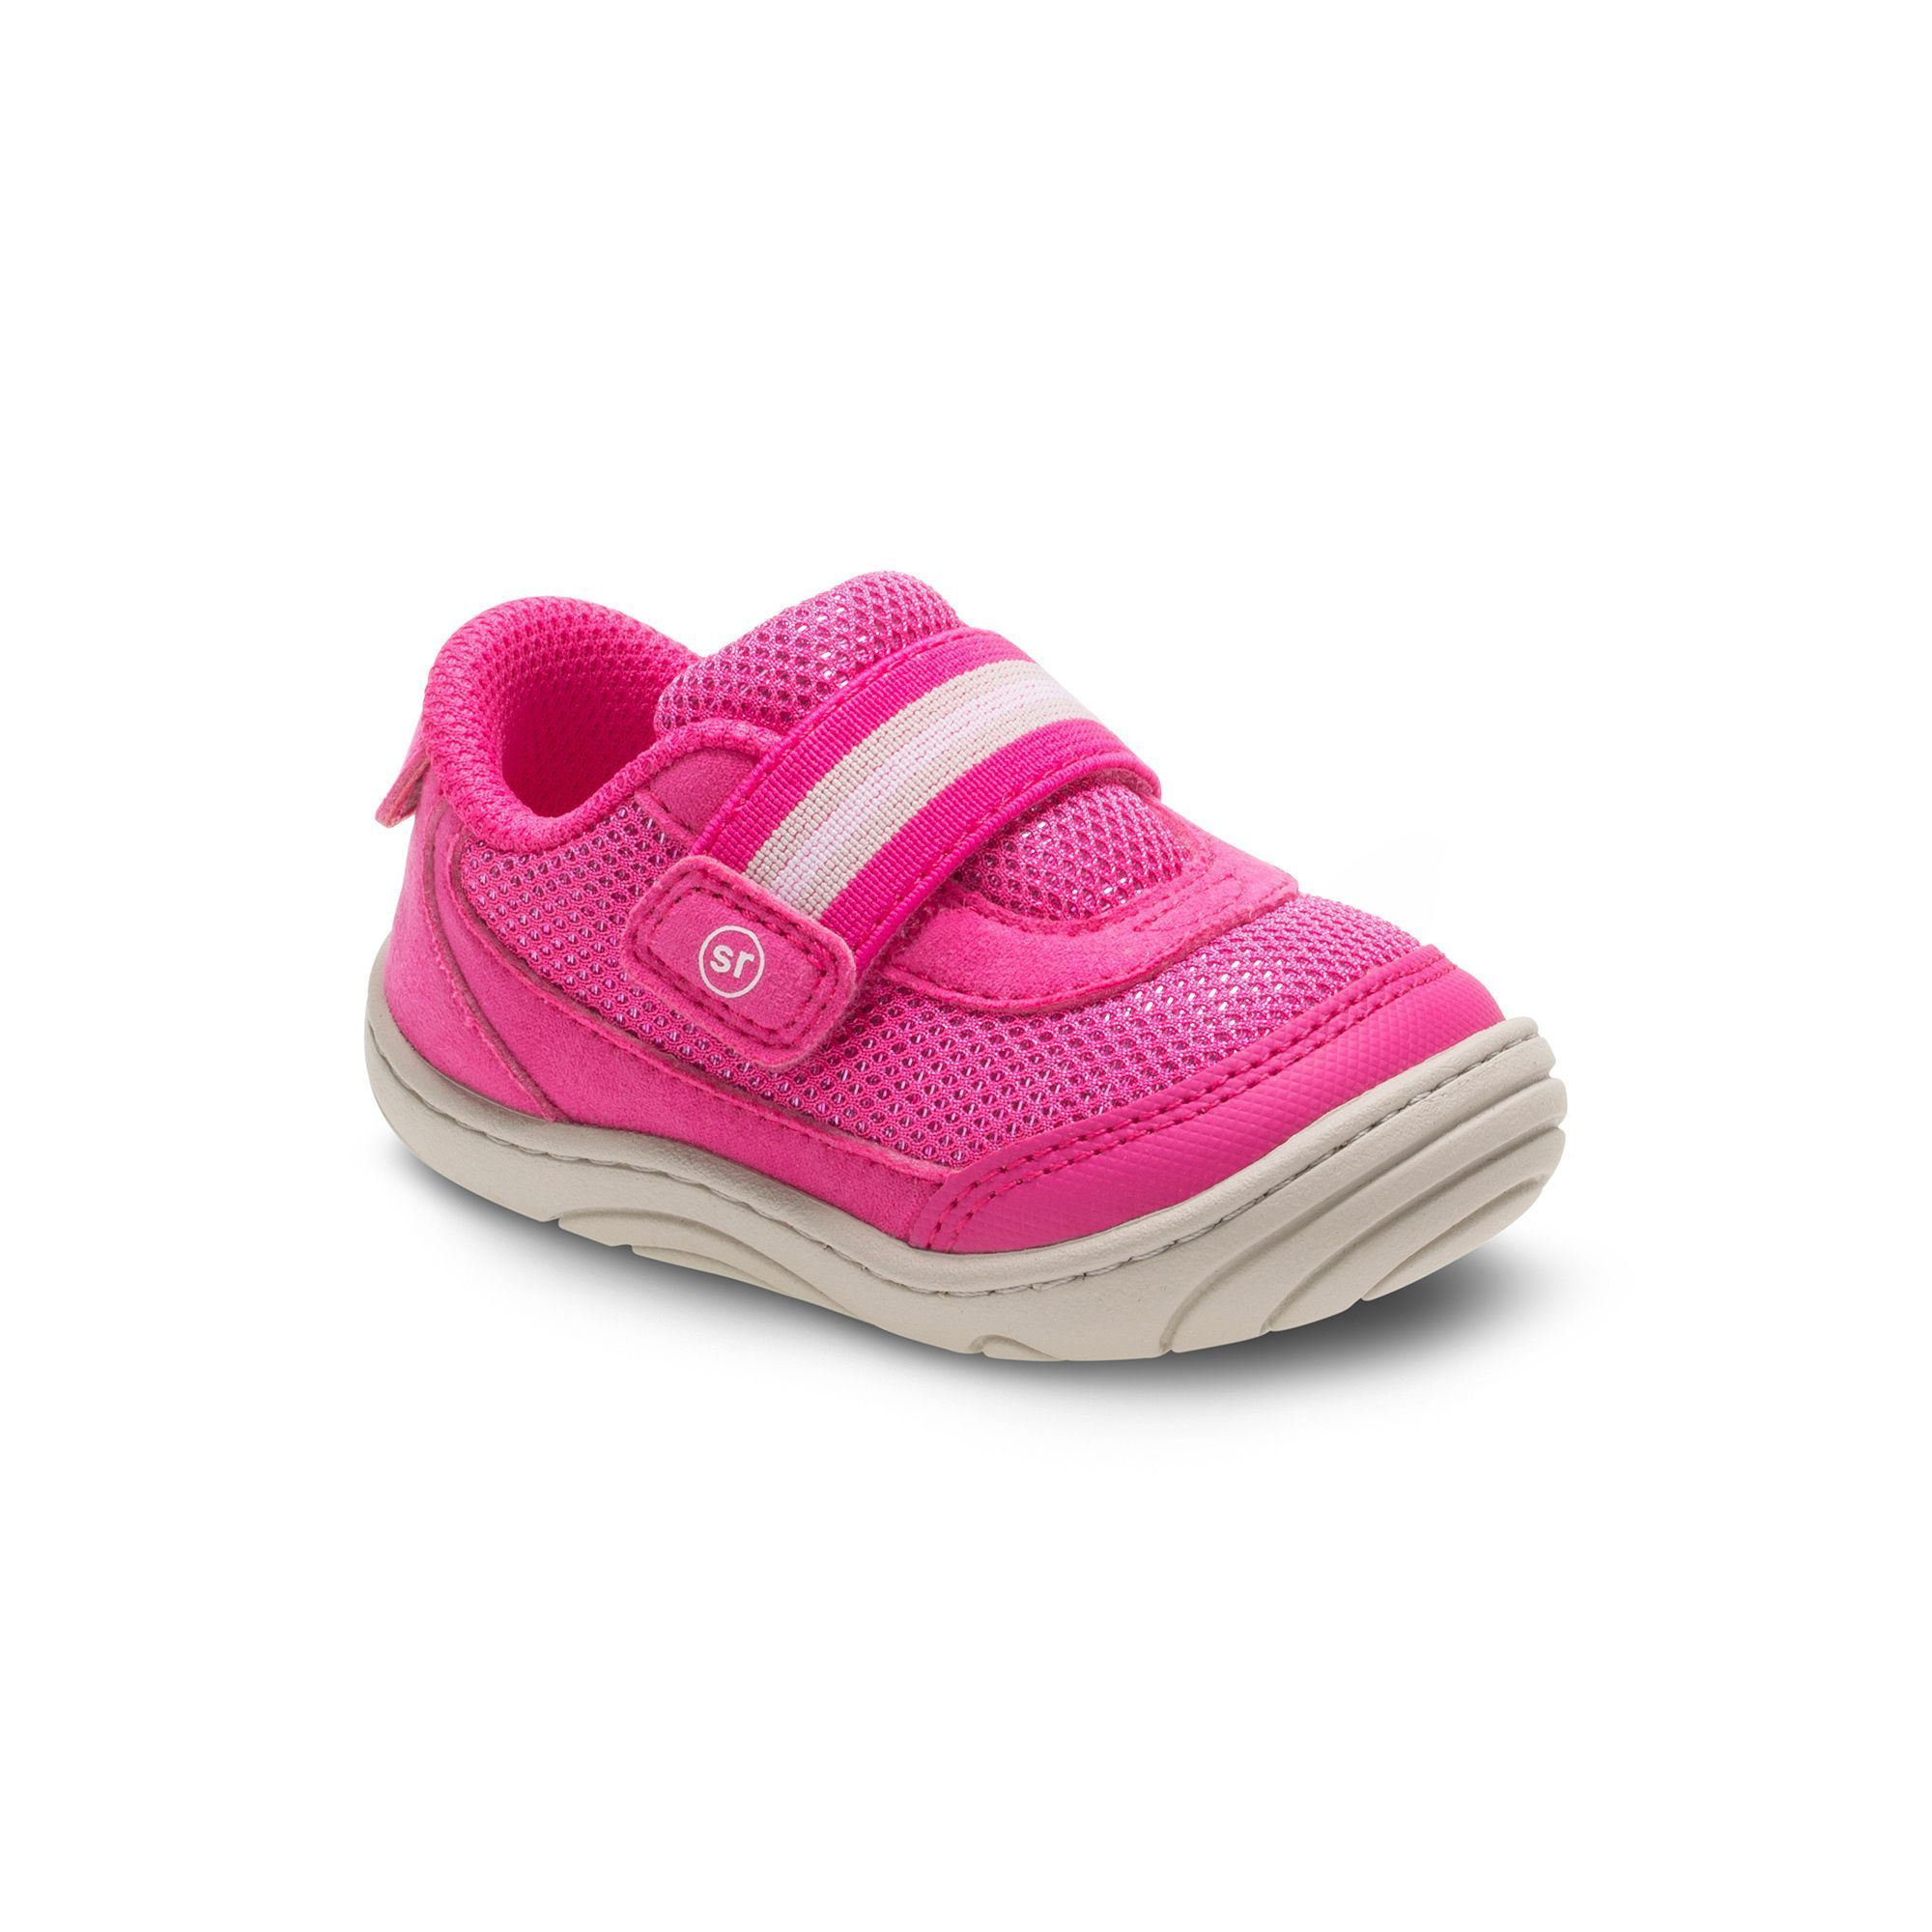 609969a9c3 Stride Rite Jessie Baby   Toddler Girls  Sneakers